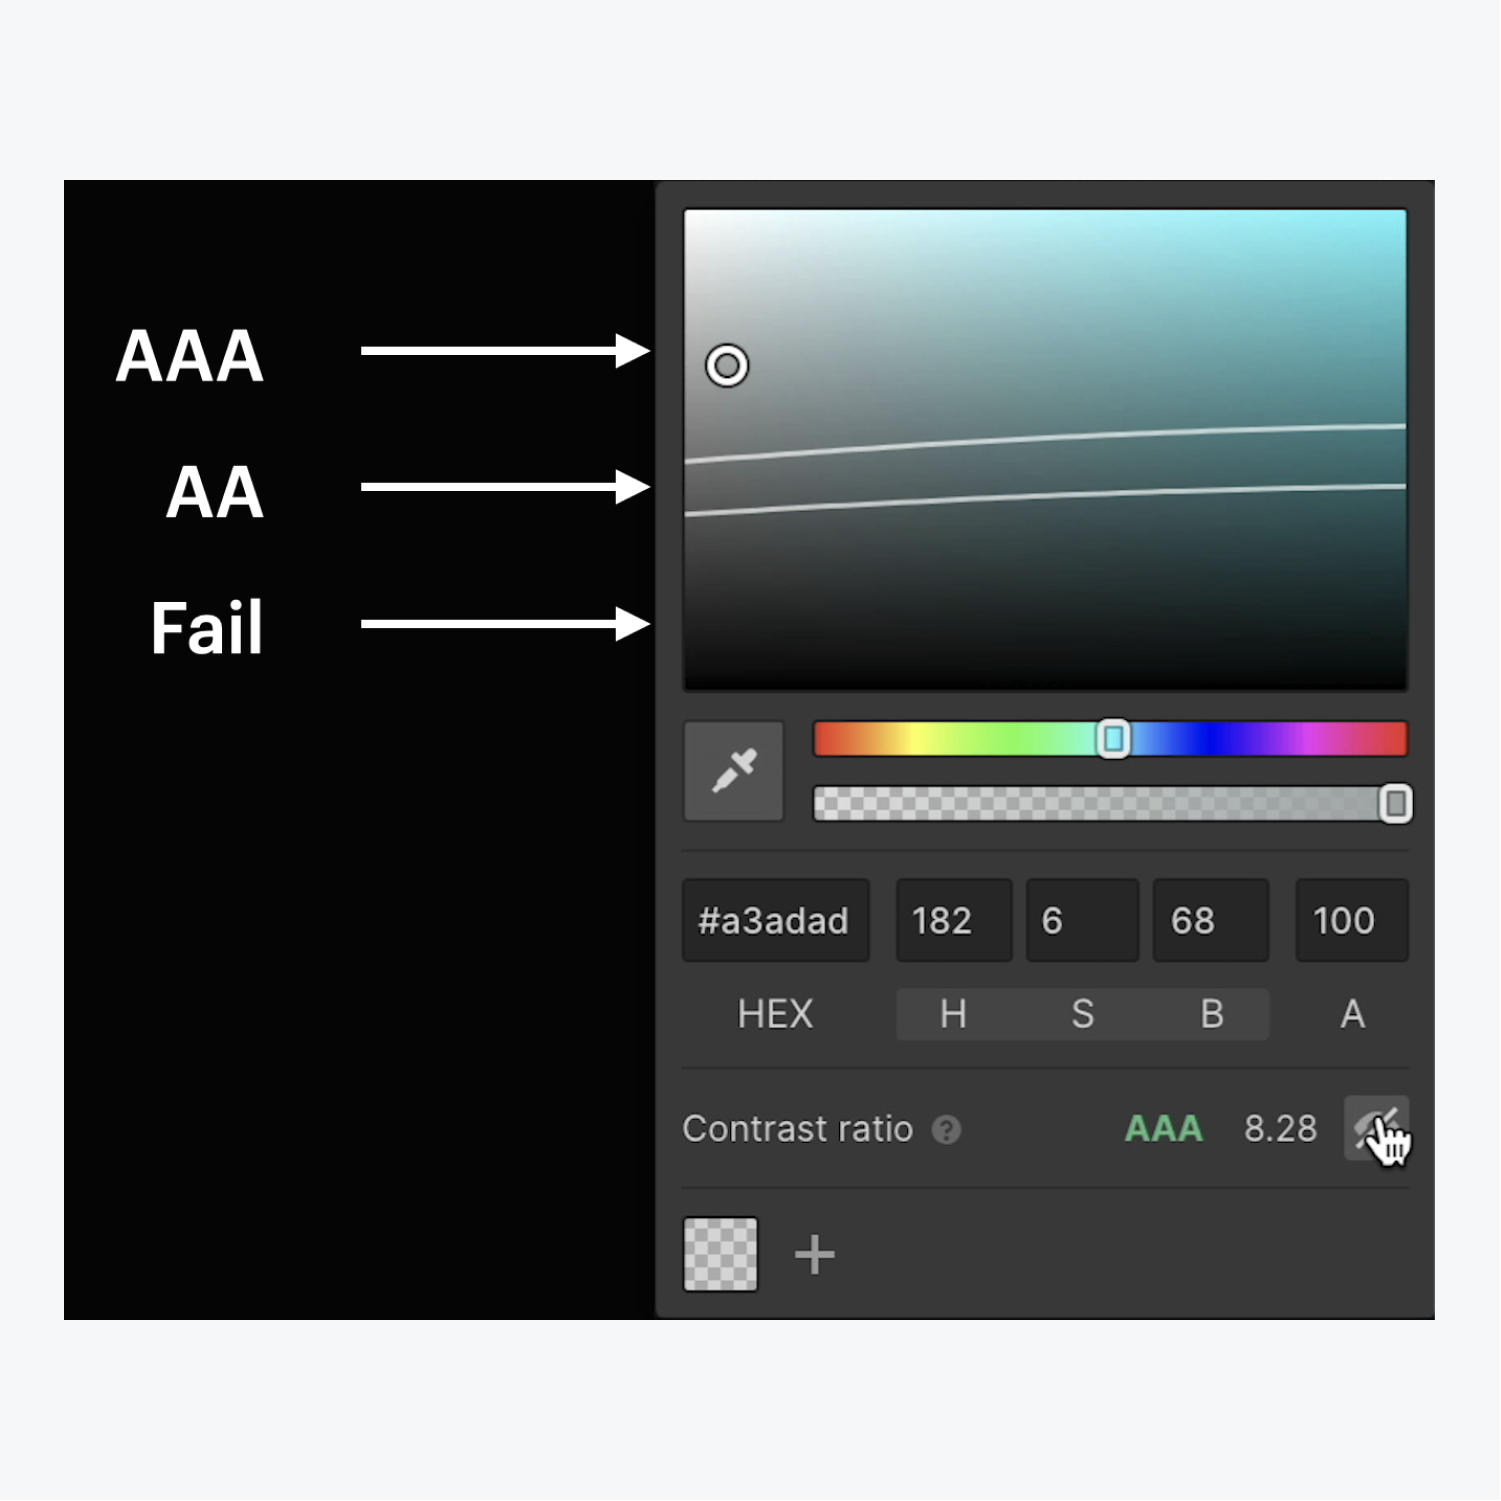 """The Color contrast checker displays ratio range patterns between AAA to Fail by clicking the """"eye"""" icon in the color picker."""